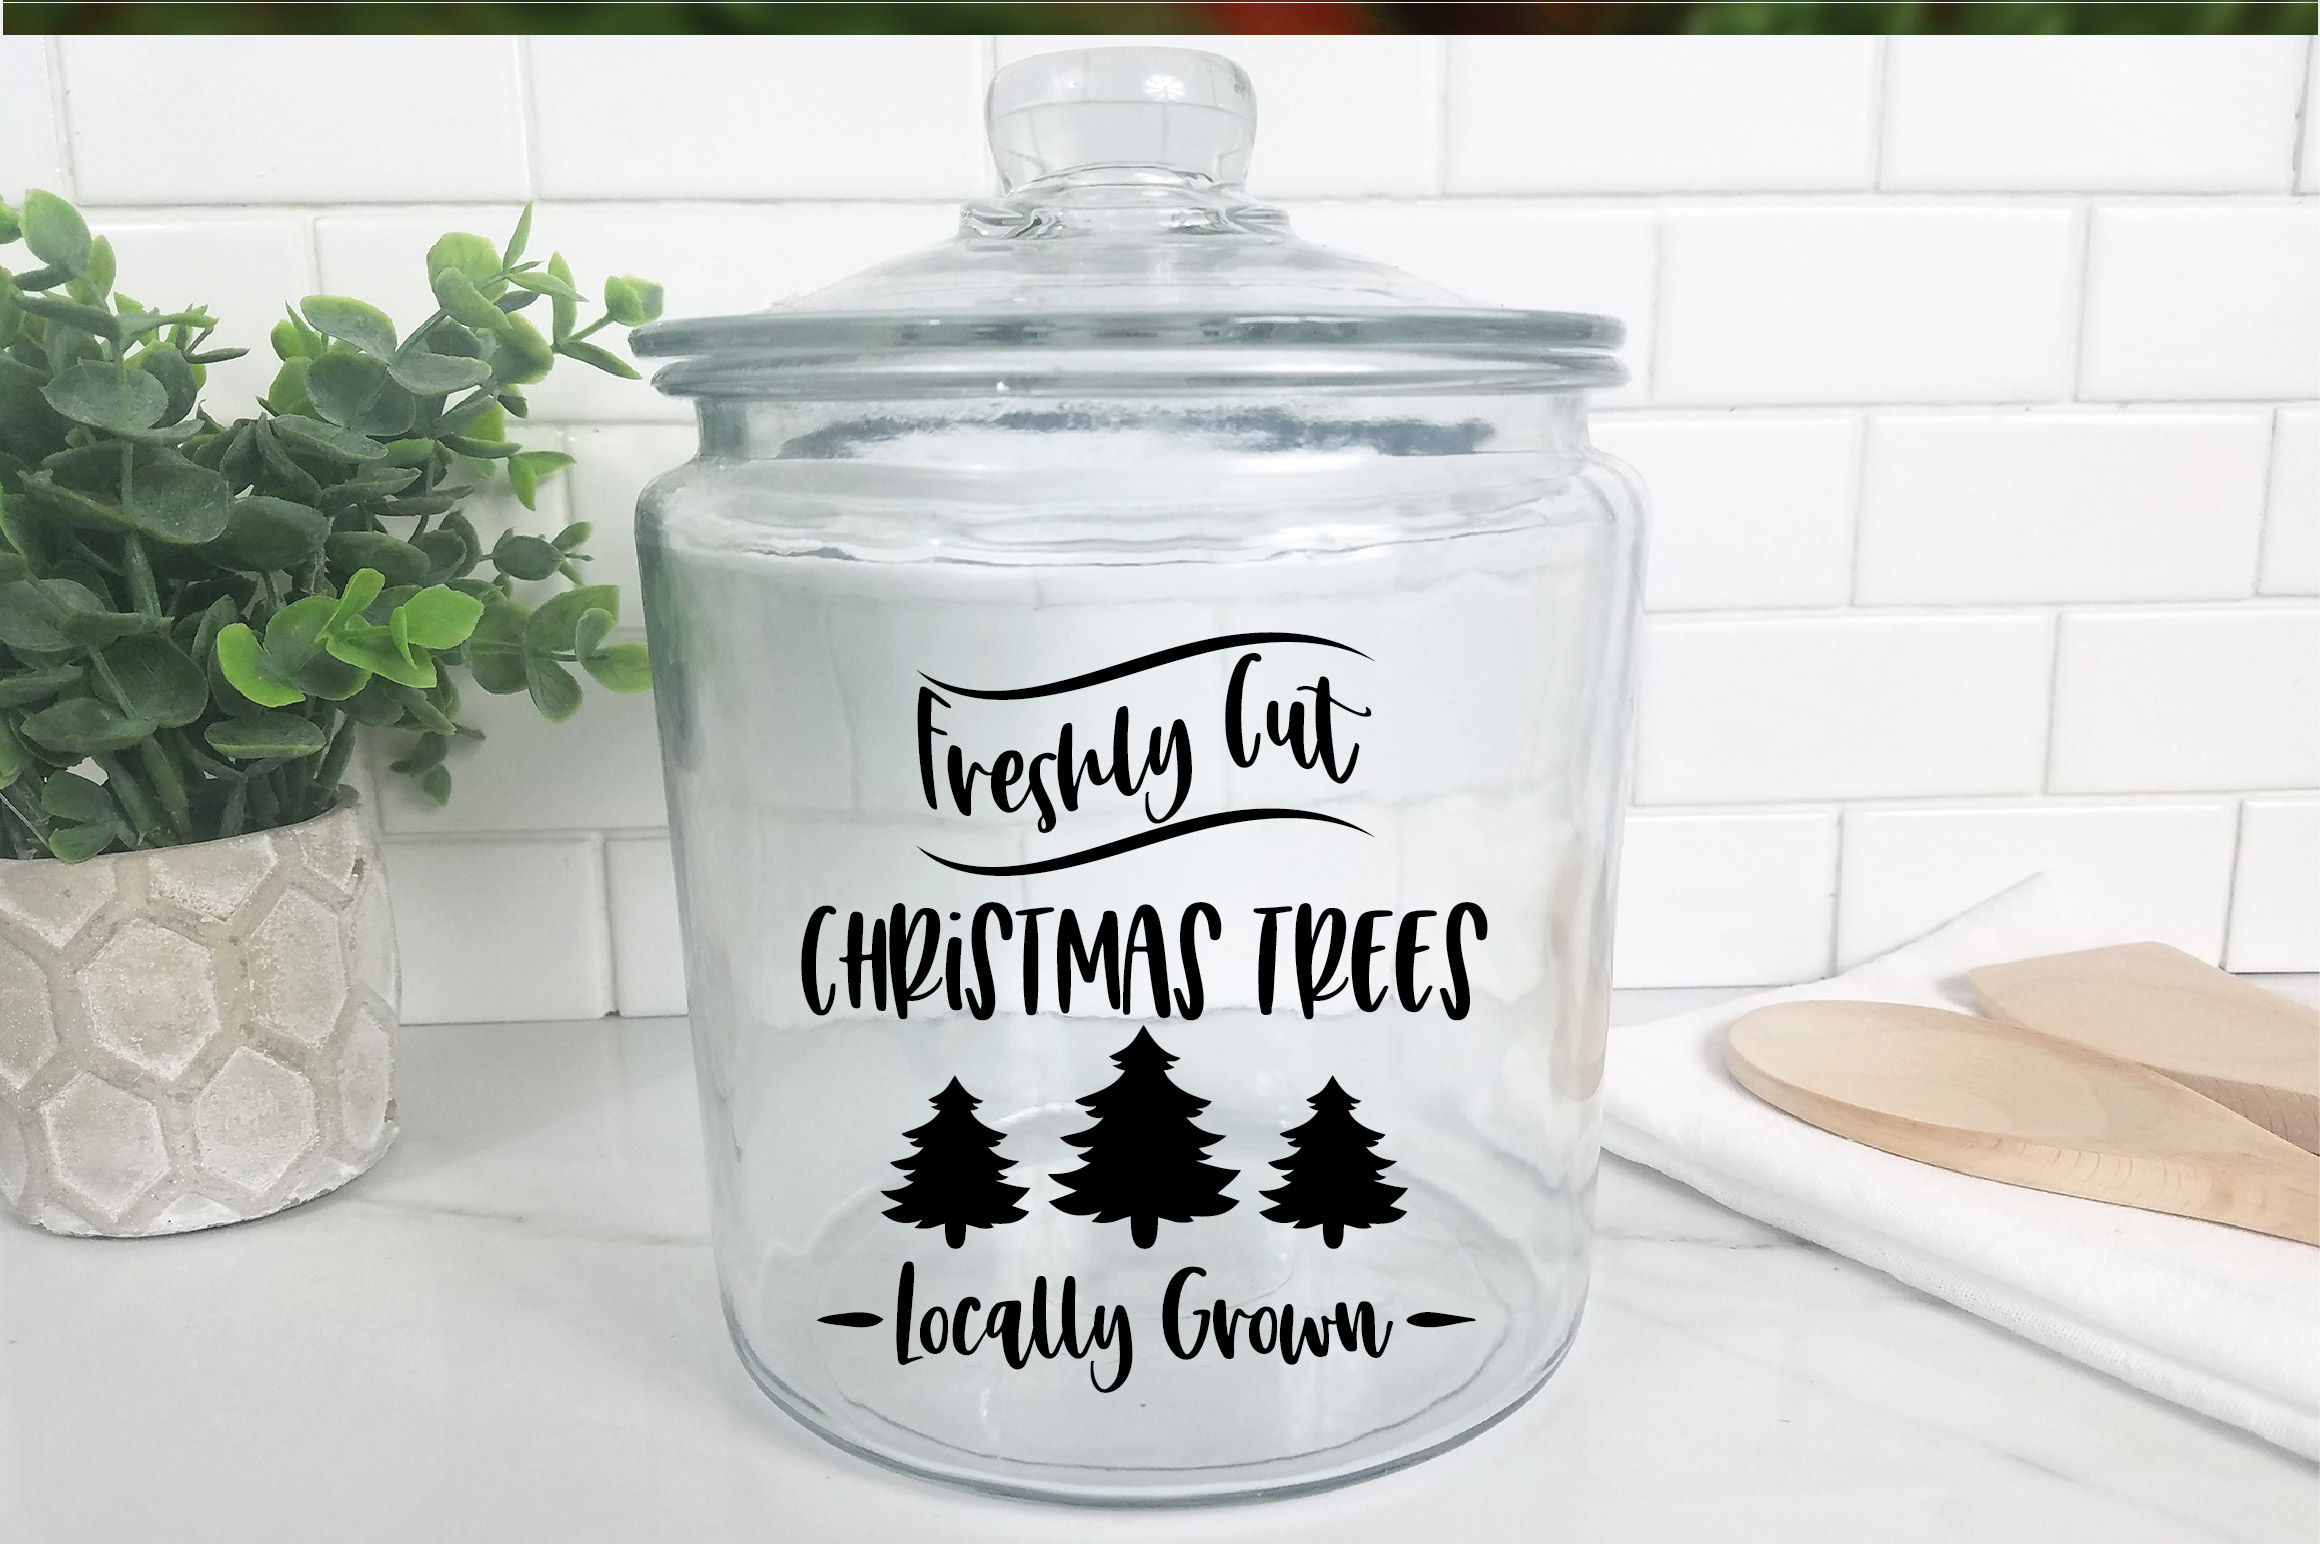 Christmas SVG Cut File - Freshly Cut Christmas Trees SVG DXF example image 9